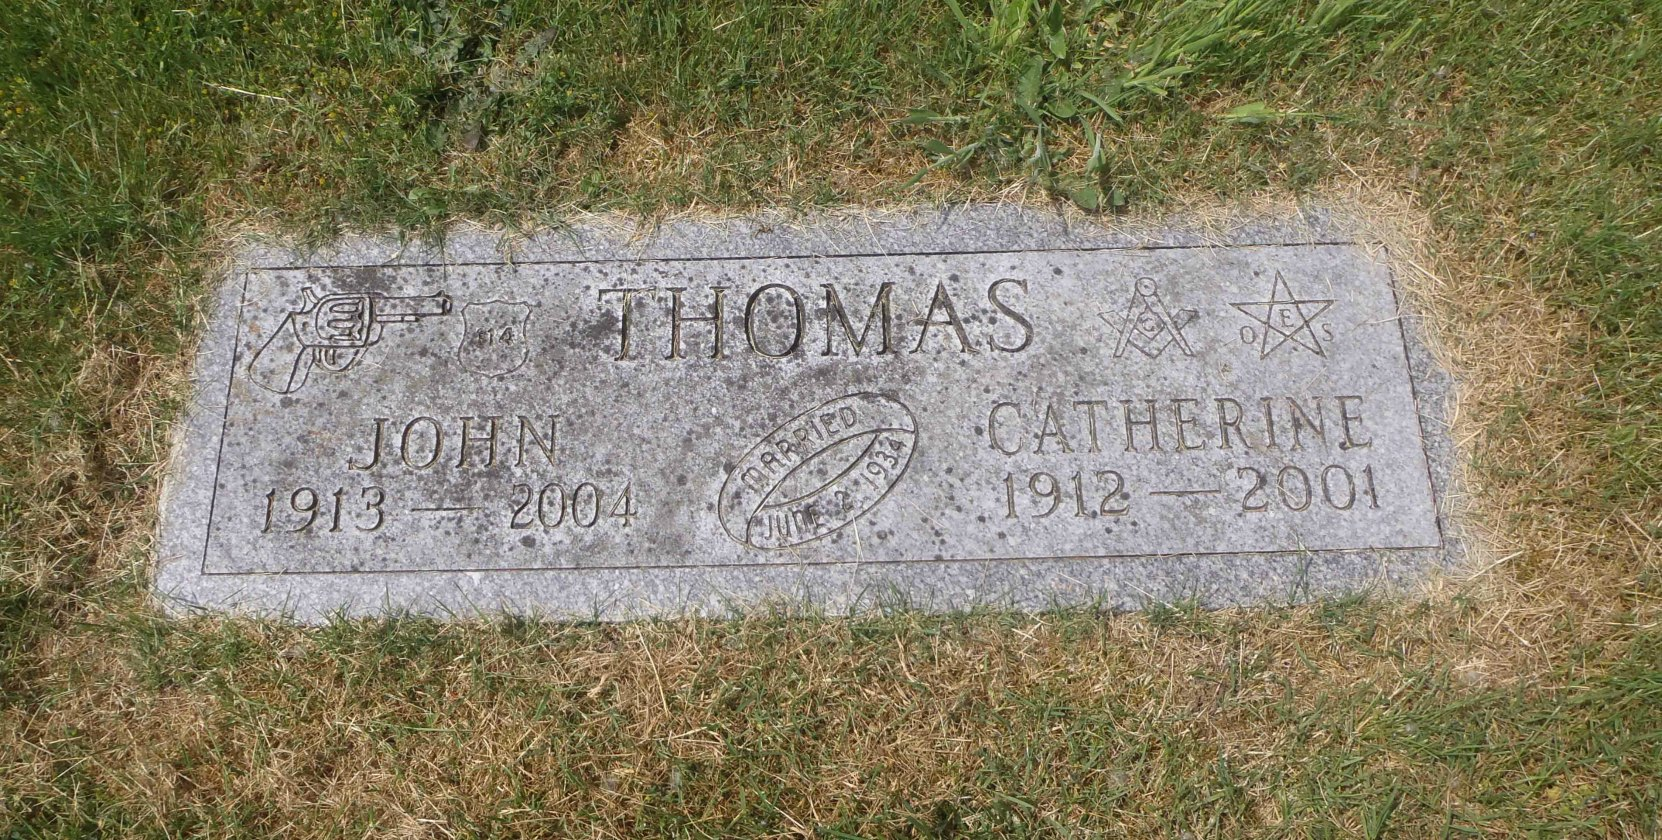 John Thomas and Catherine Thomas grave marker, Shawnigan Cemetery, Shawnigan Lake, B.C. (photo by Temple Lodge No. 33 Historian)